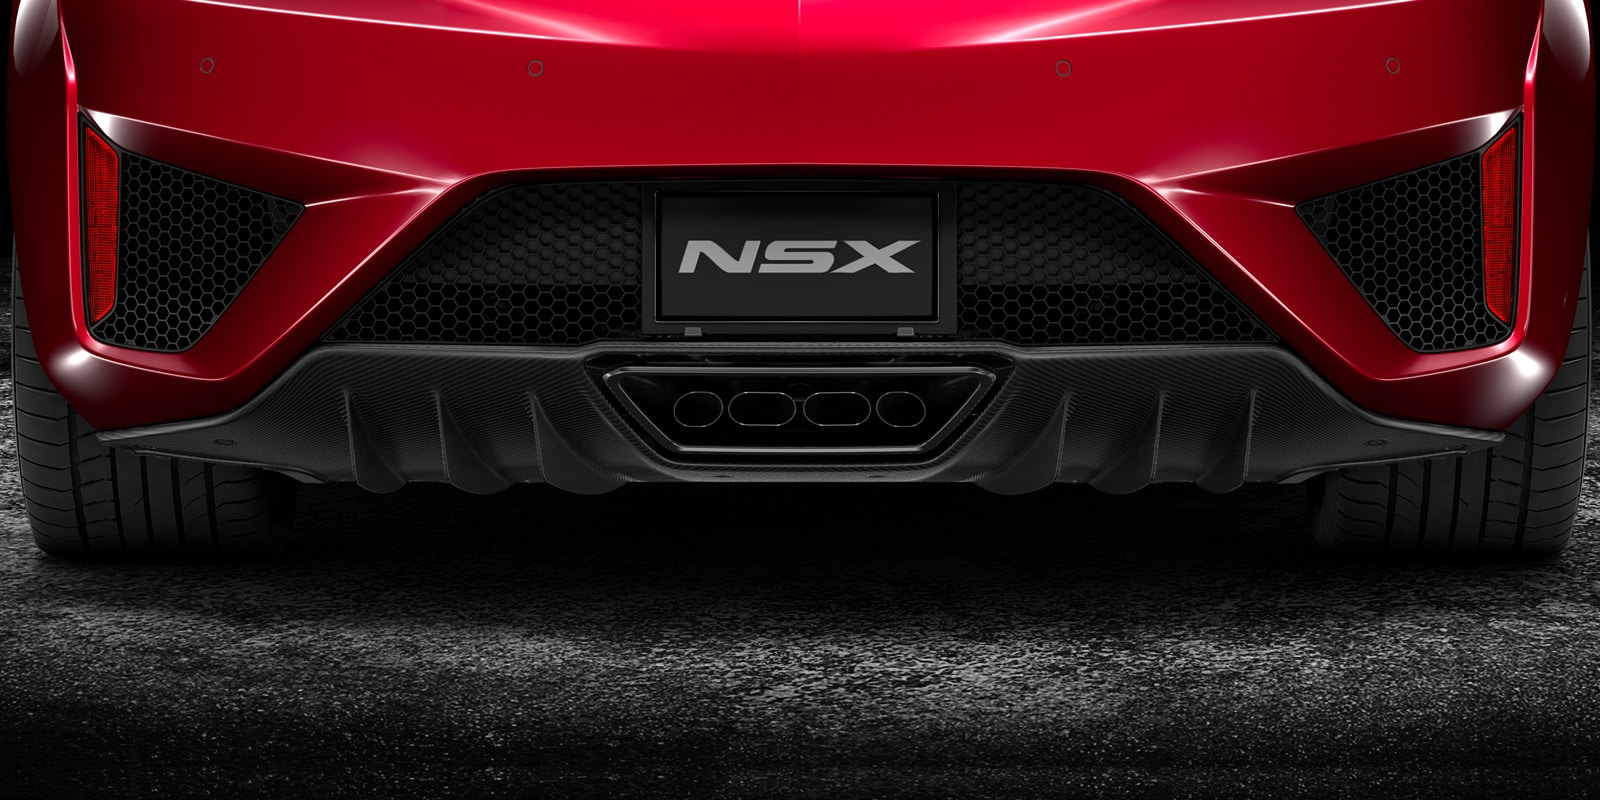 2017 Acura NSX - Sport Package